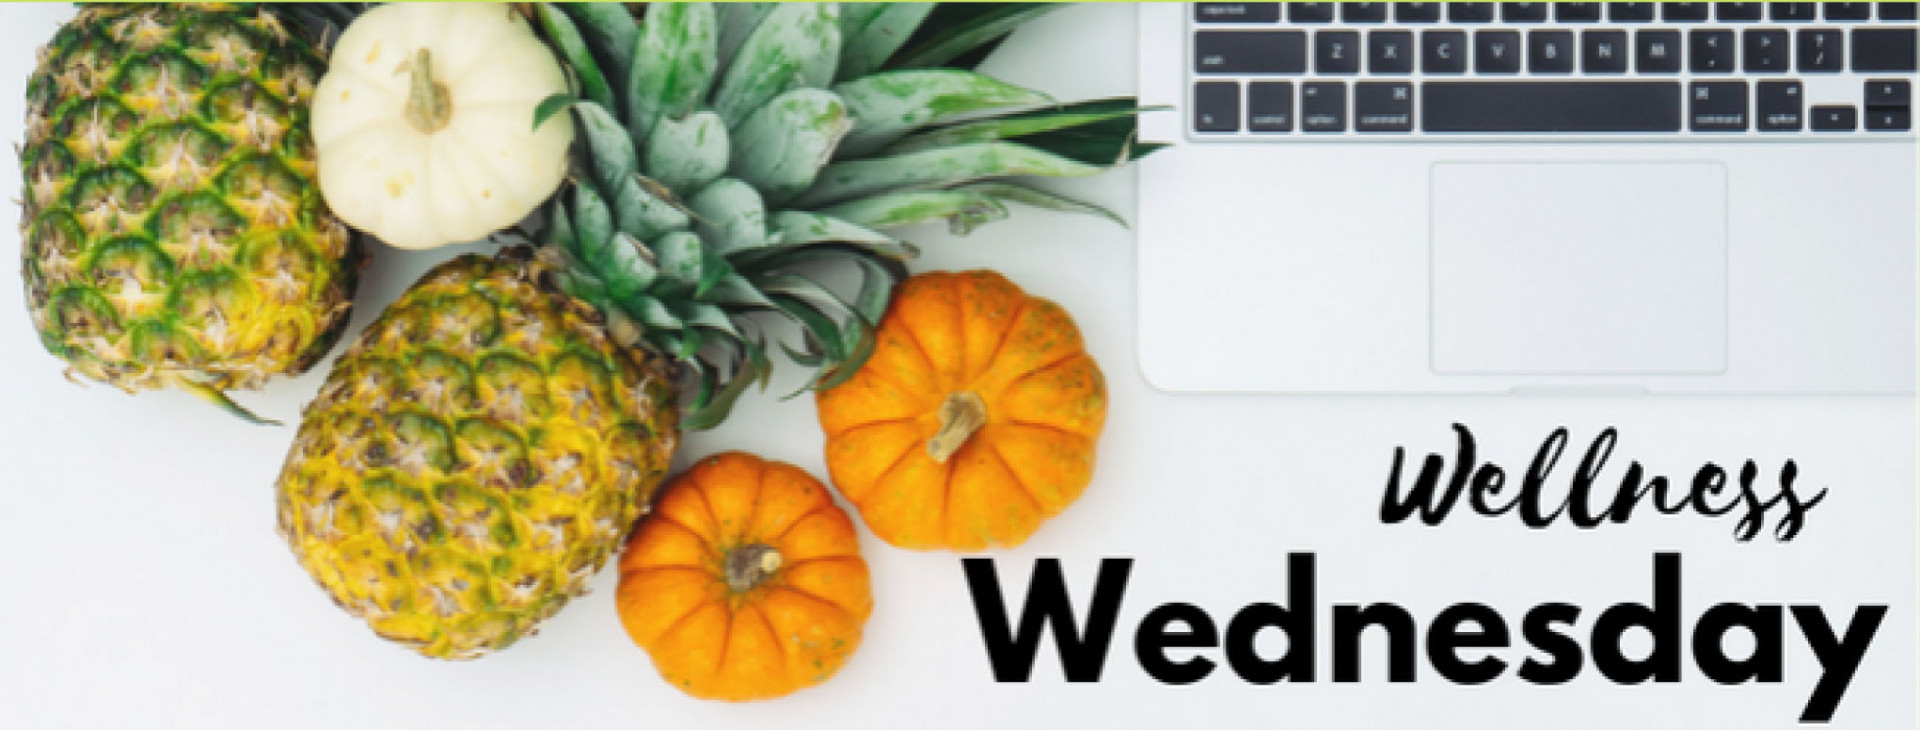 Wellness Wednesday - October 16th, 2019